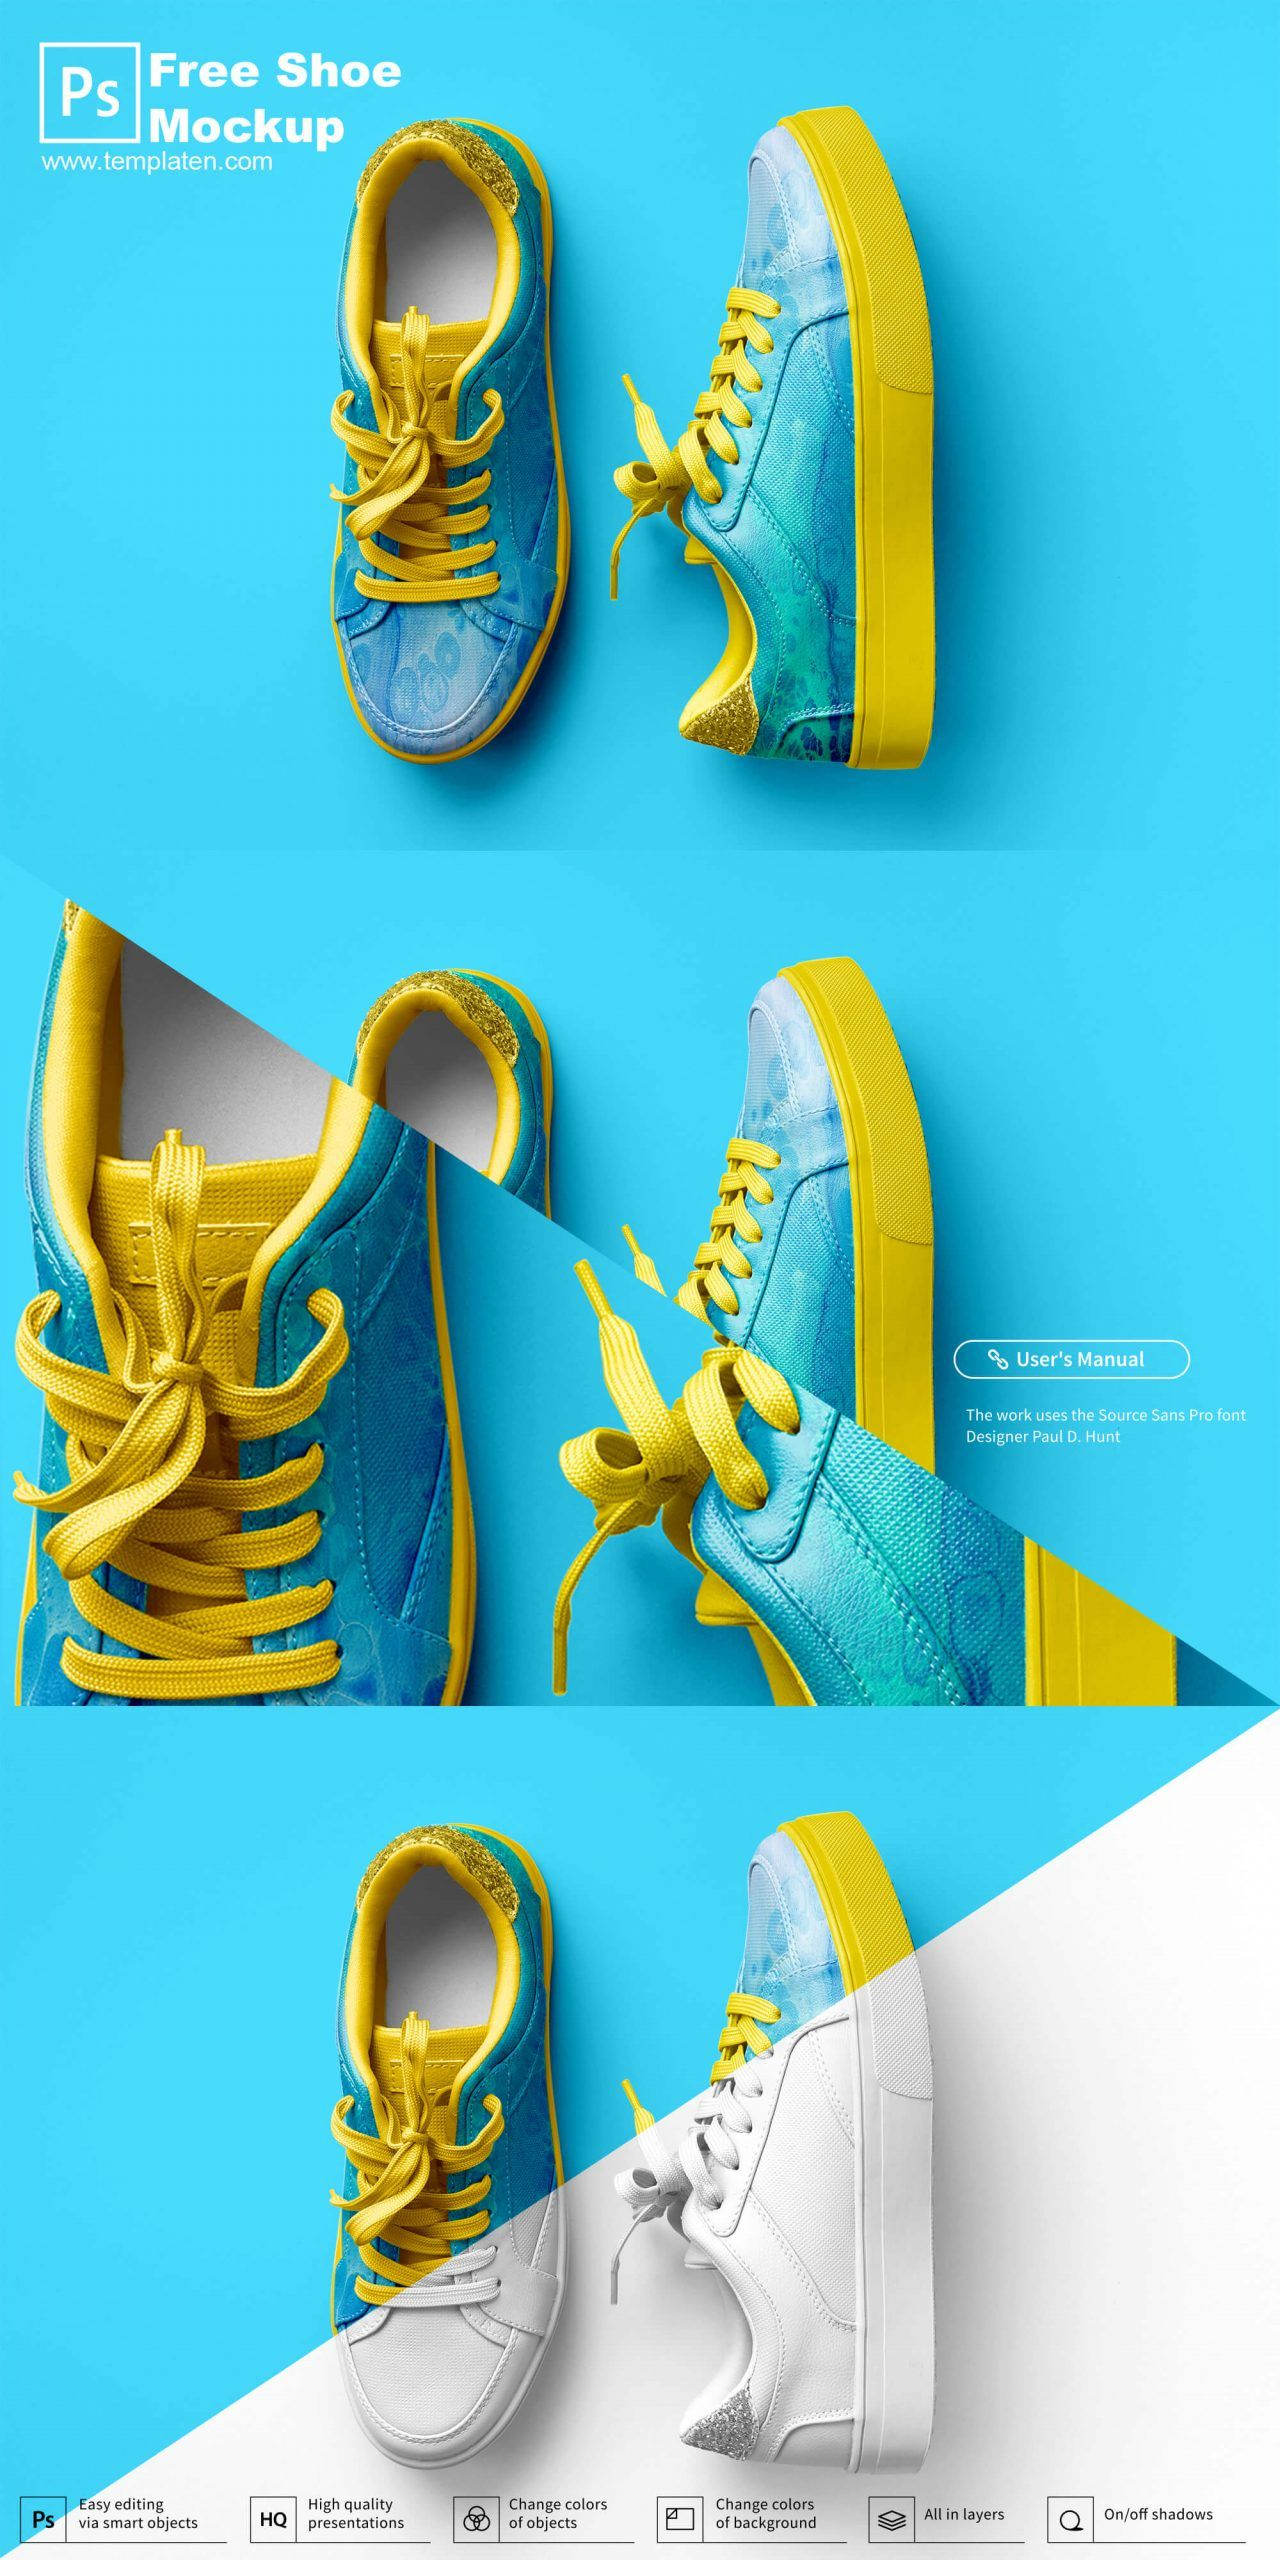 Free Shoe Psd Template Mockup For Display Presentation Free Shoes Psd Templates Shoes